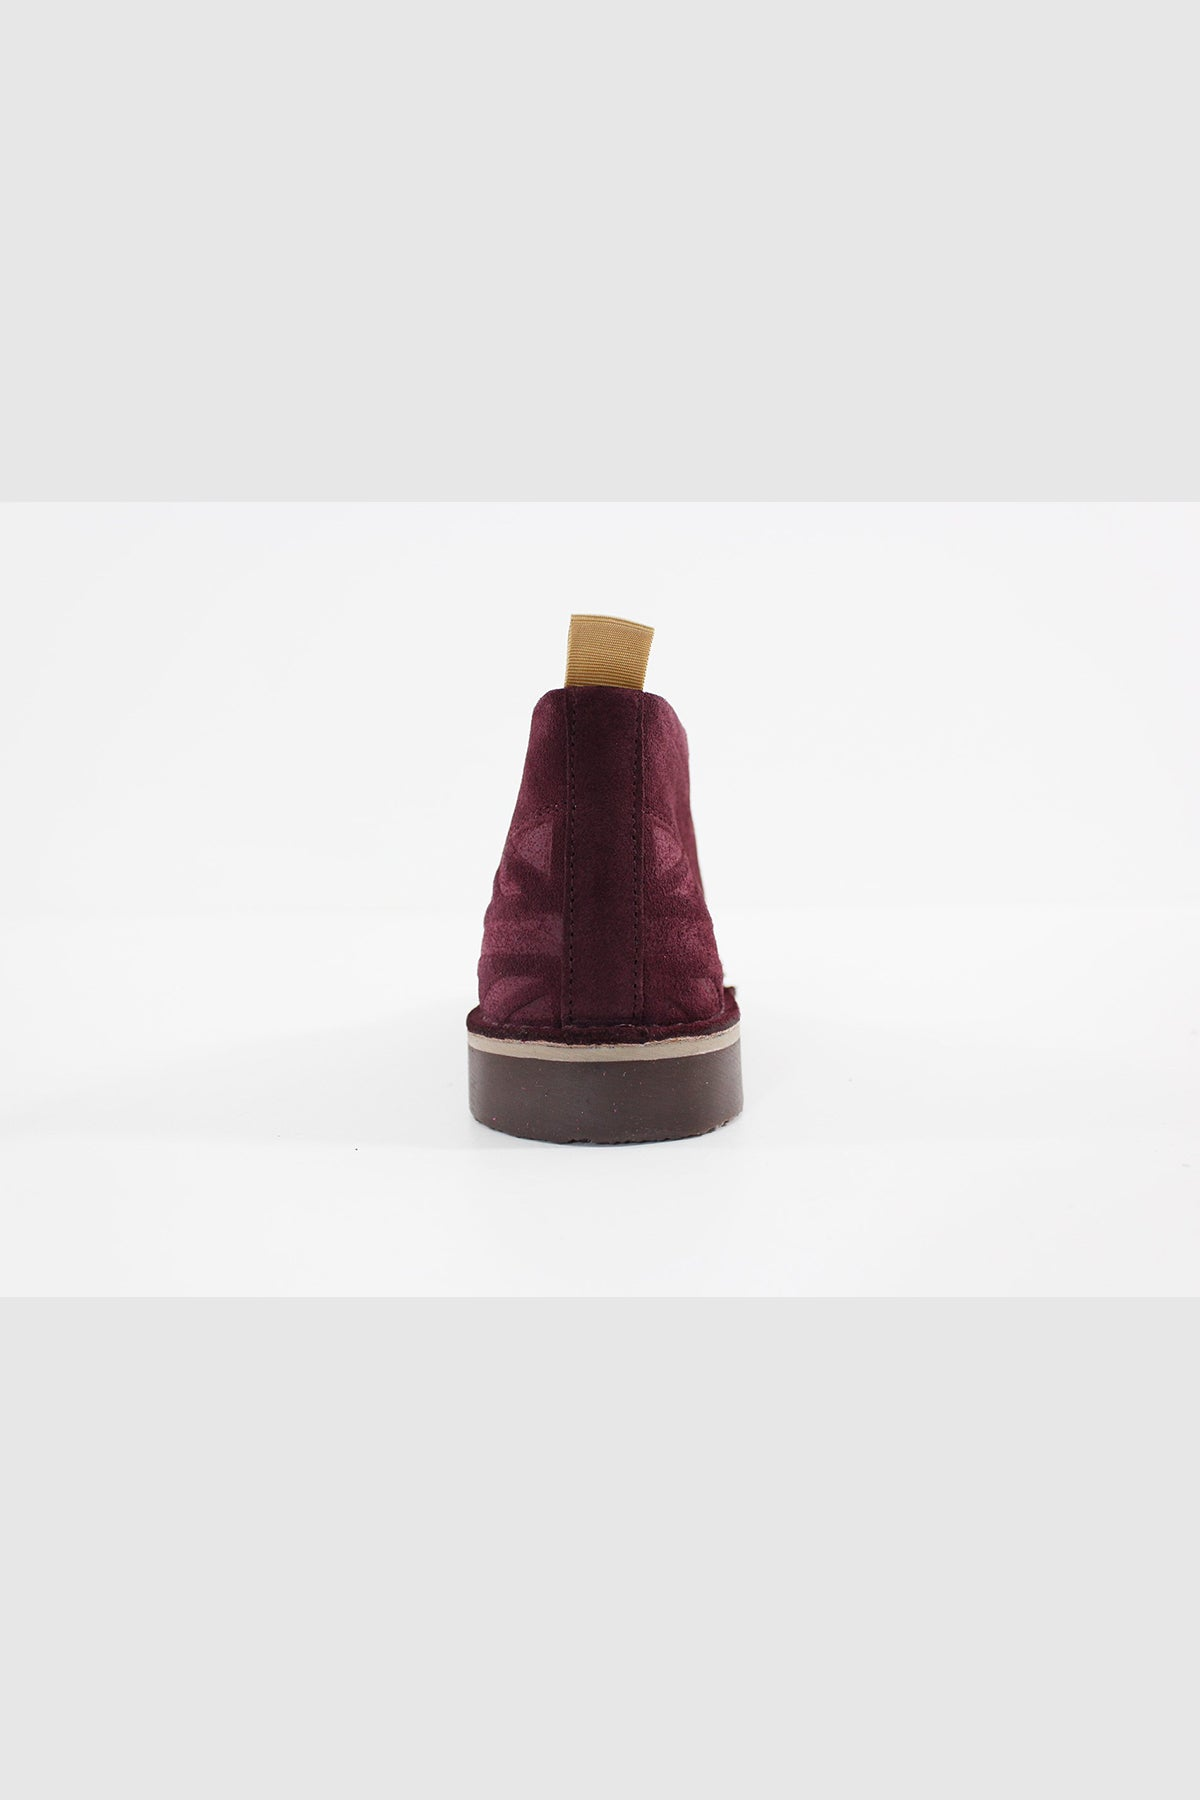 Submarine London - NEW MANCHESTER SUEDE UNISEX (WINE-CAPPUCCINO) Boot